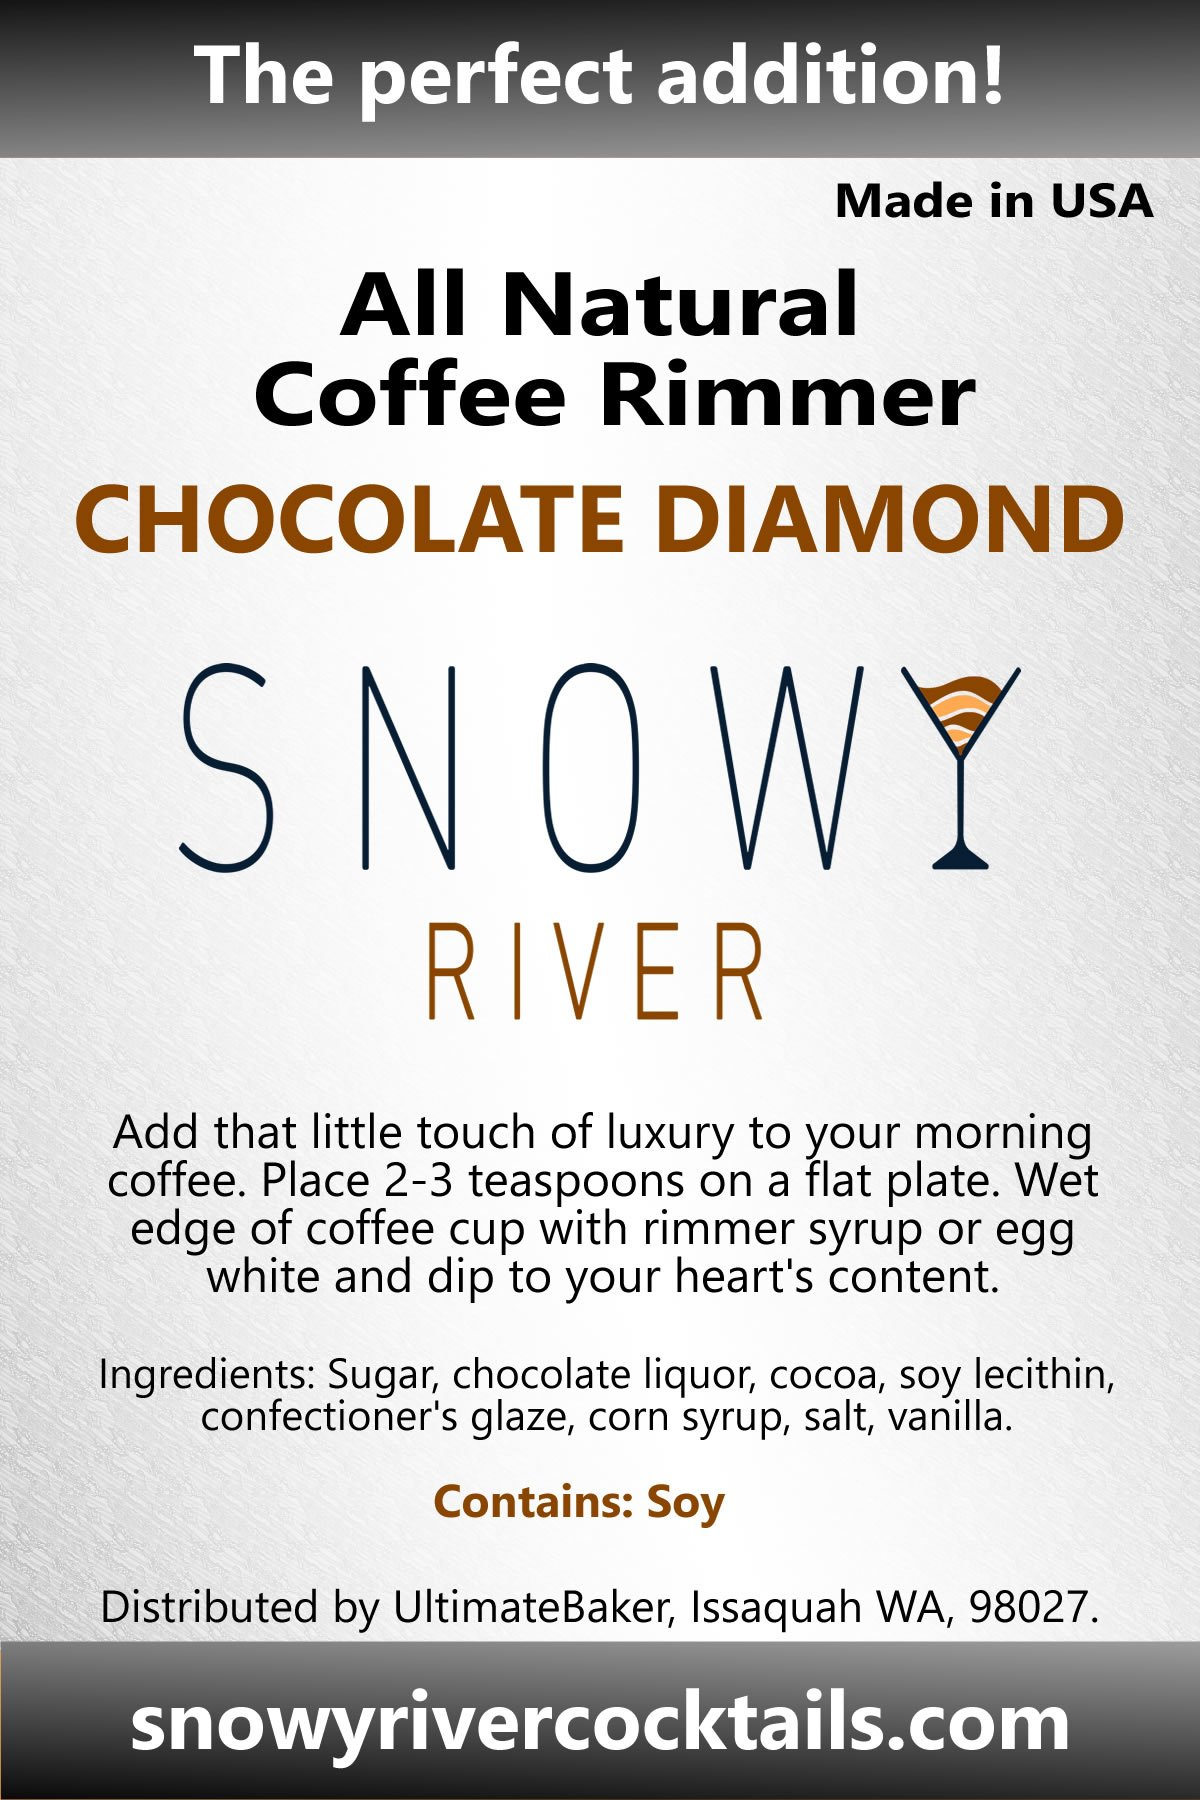 Snowy River Coffee Rimmer (Chocolate Diamond, 8oz)